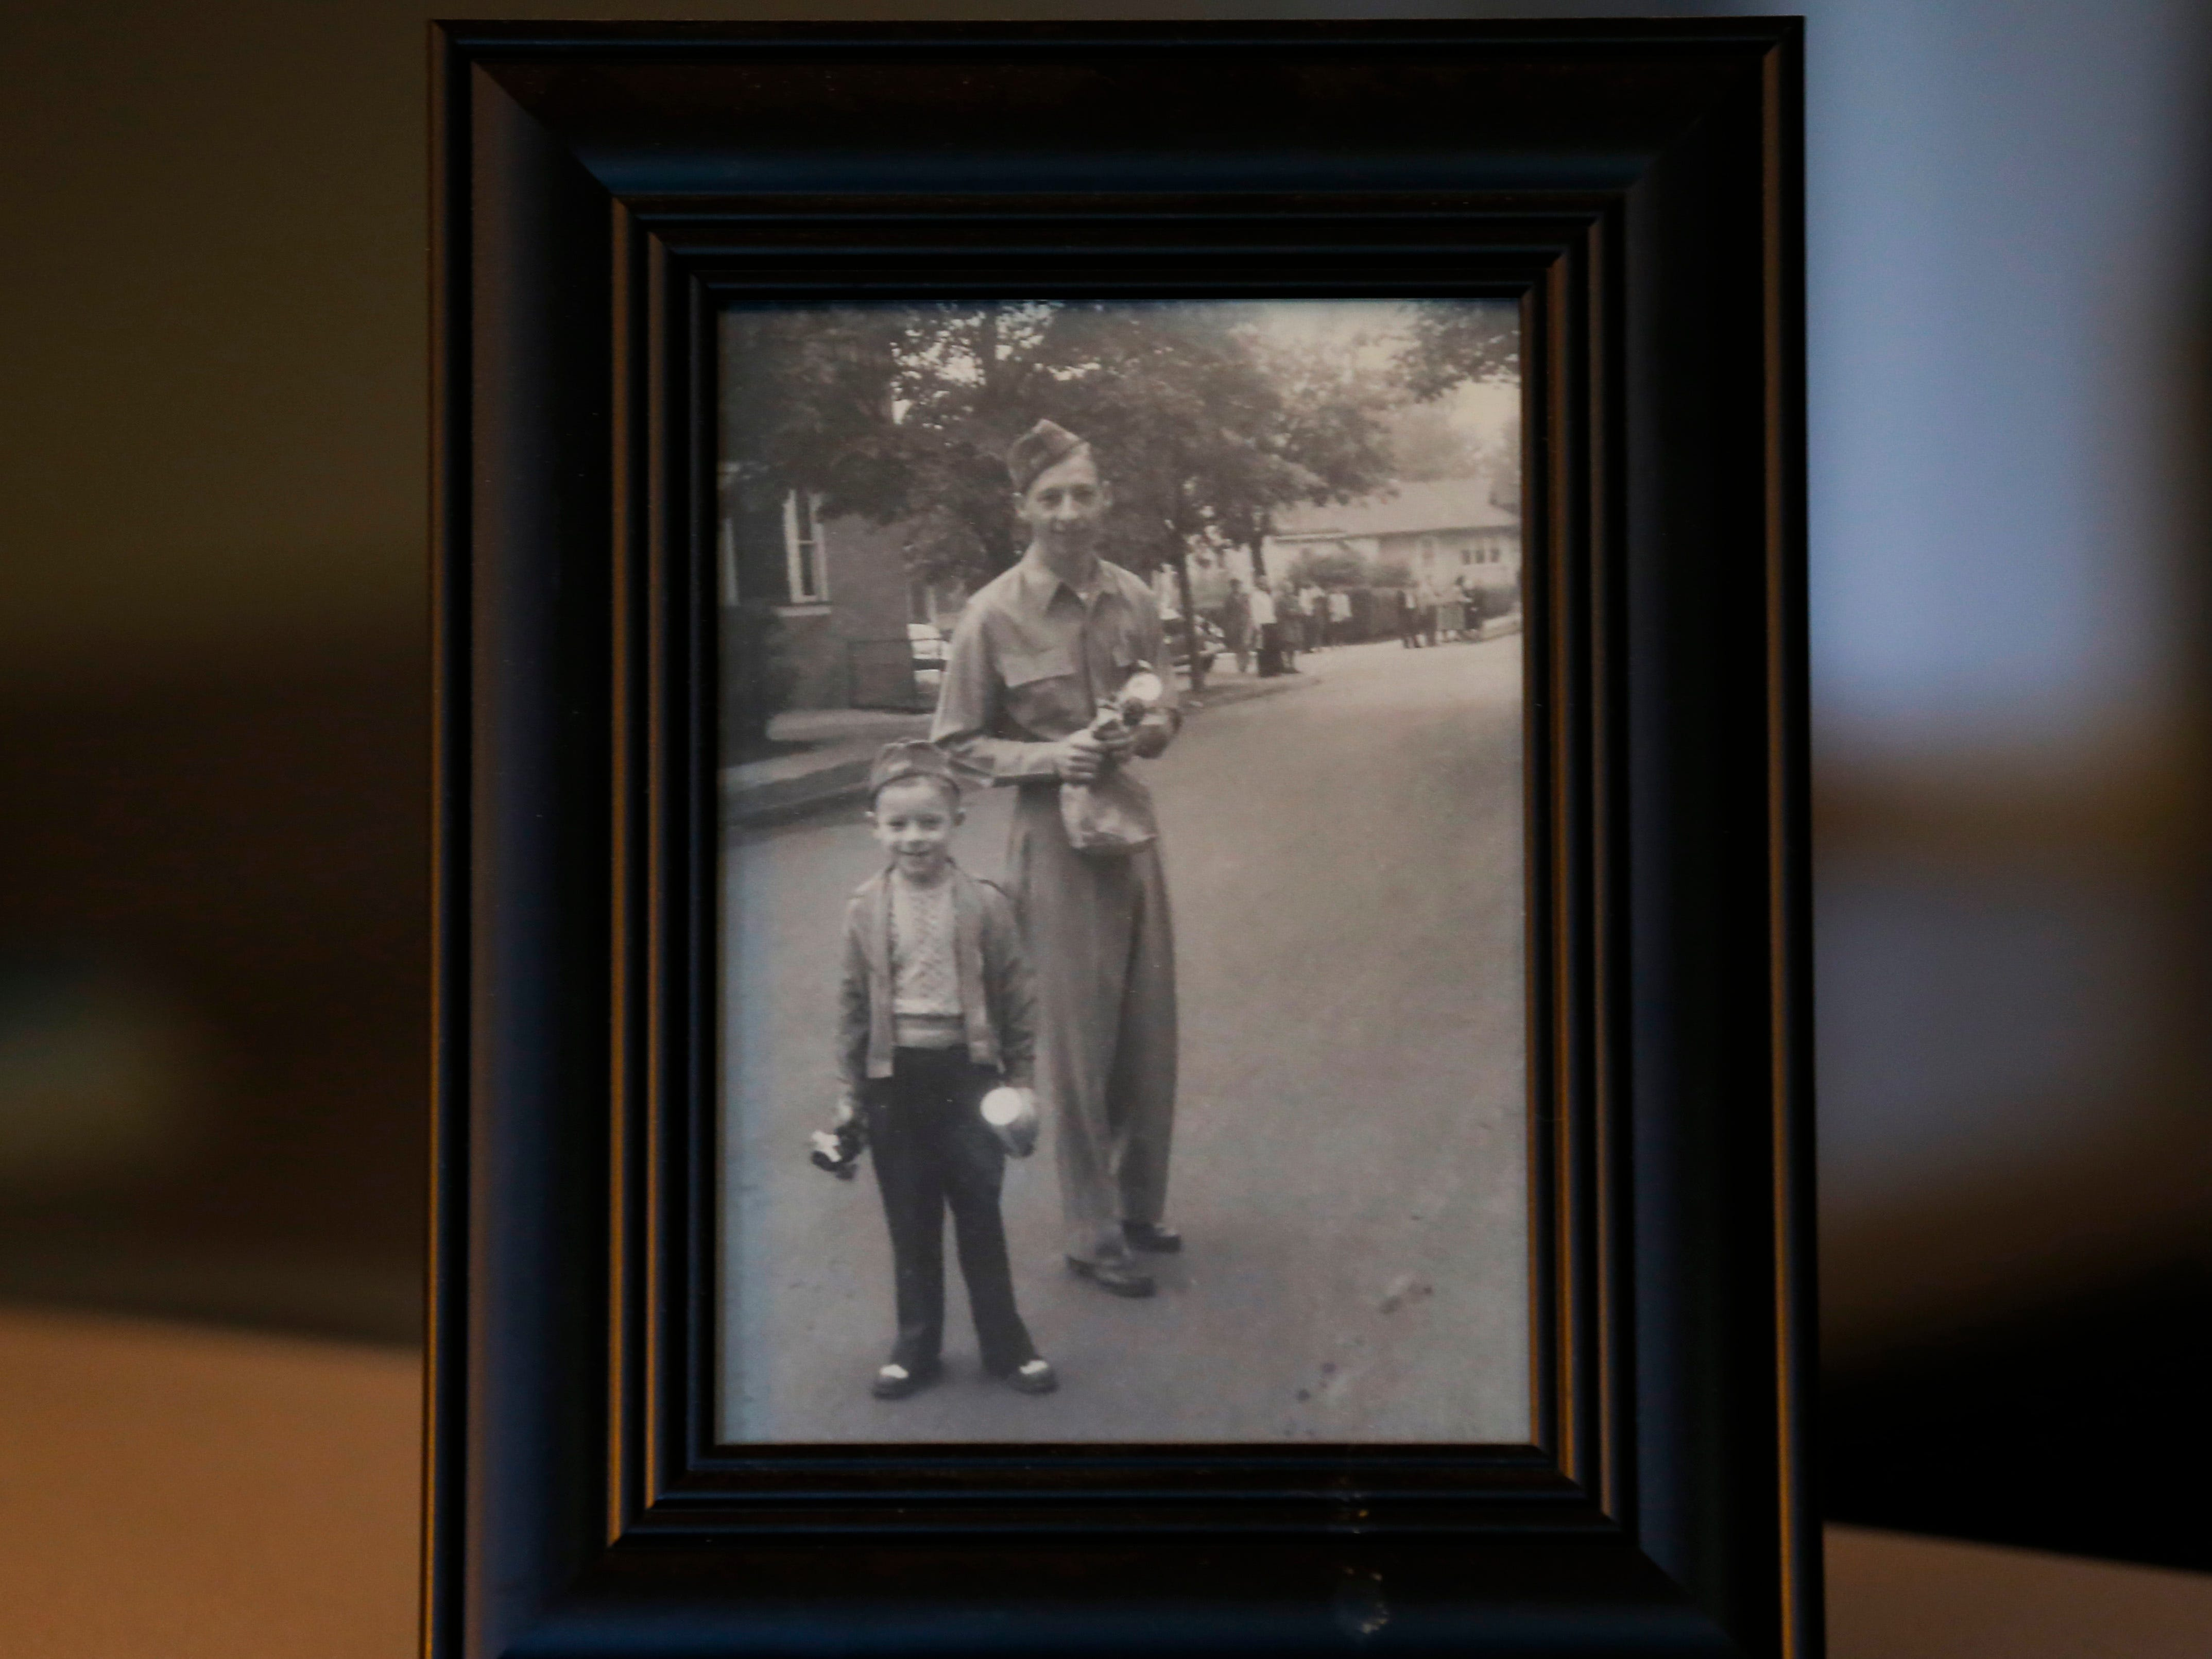 A photo of Stephen Floyd and his son after Floyd returned home from being a prisoner of war during WWII.